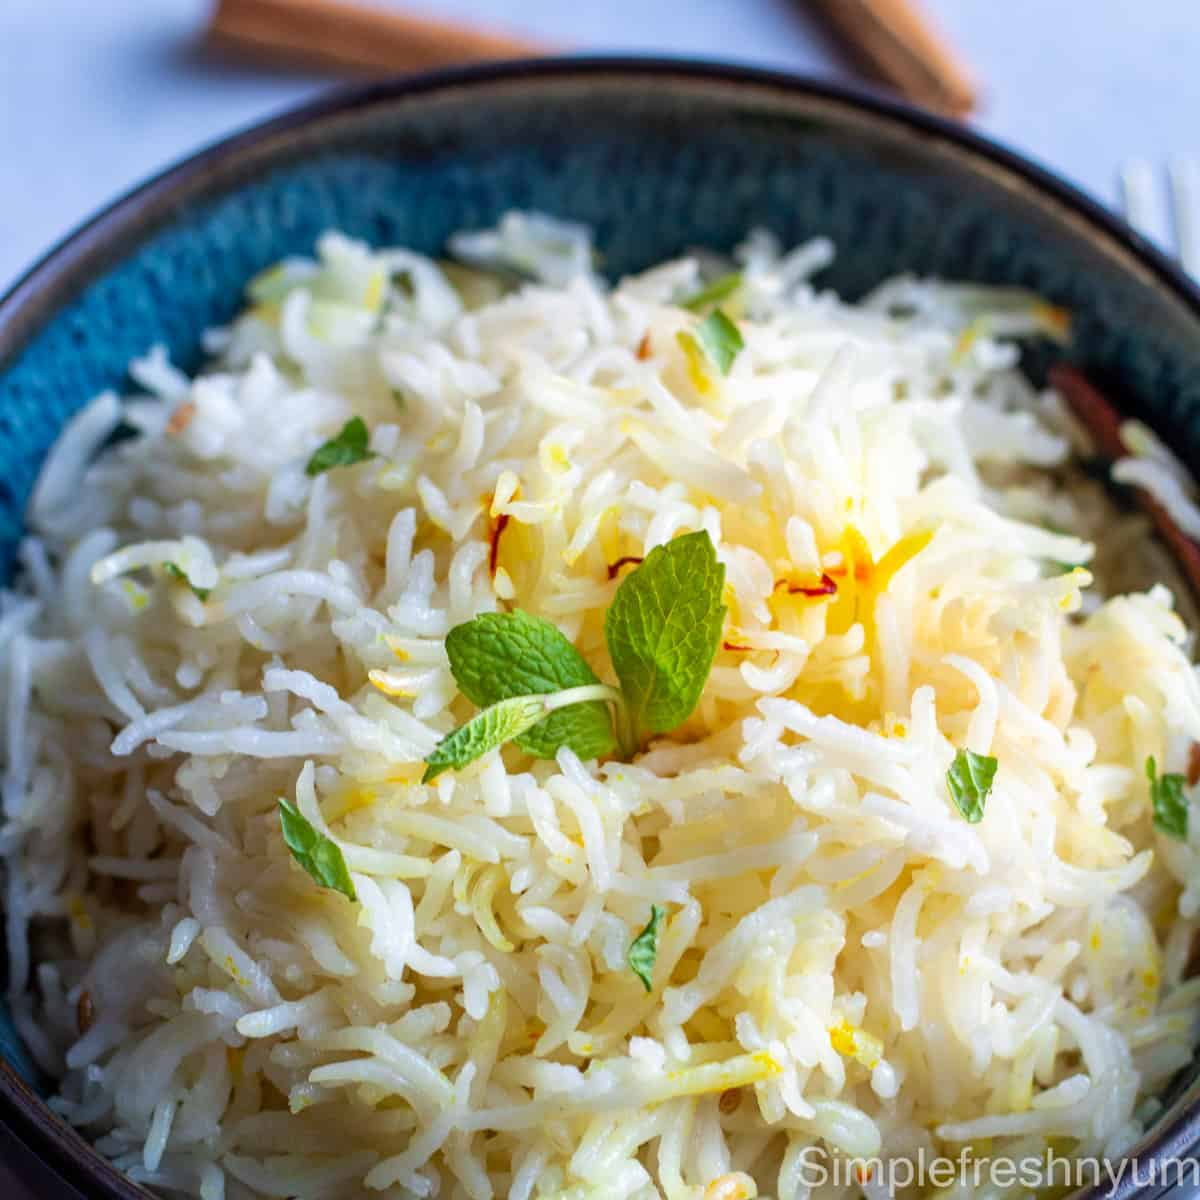 close up picture of cooked rice in a black bowl with mint garnished on top